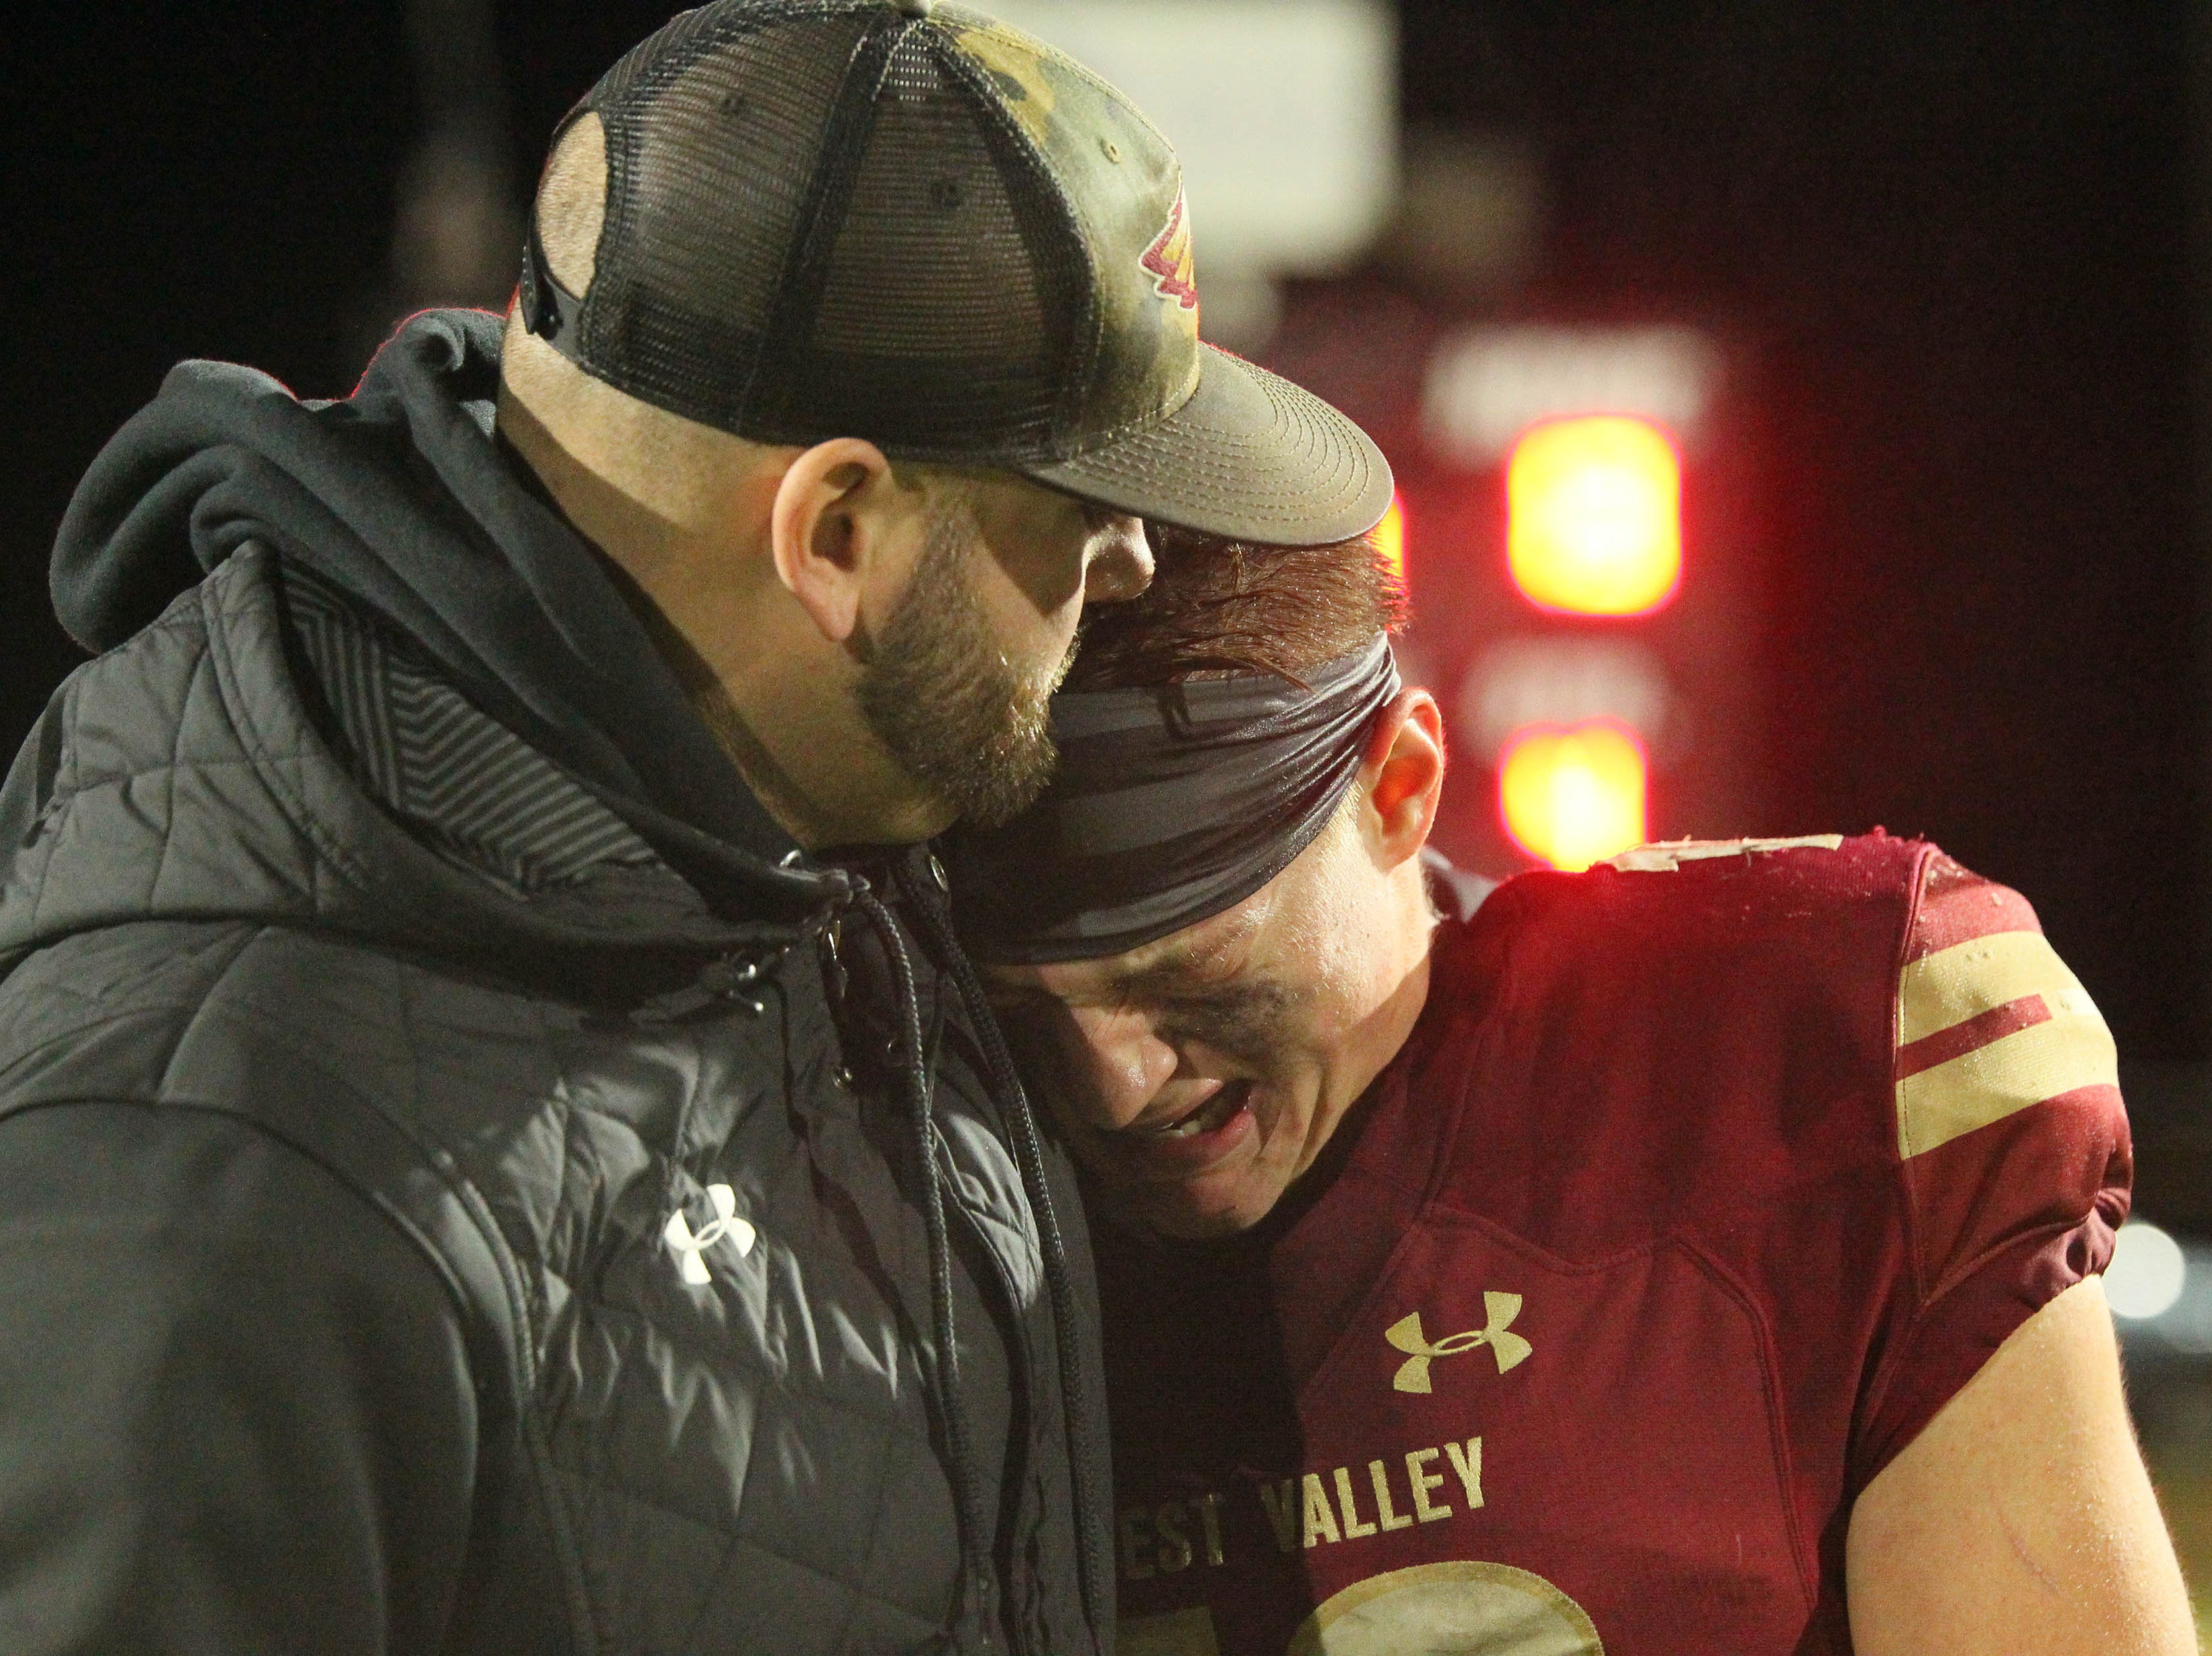 West Valley's Bailey Sulzer embraces with a coach after the game.  Rio Linda beat the Eagles, 21-13, to take the NorCal regional title for Division 5-AA in Red Bluff on Friday, Dec. 7.